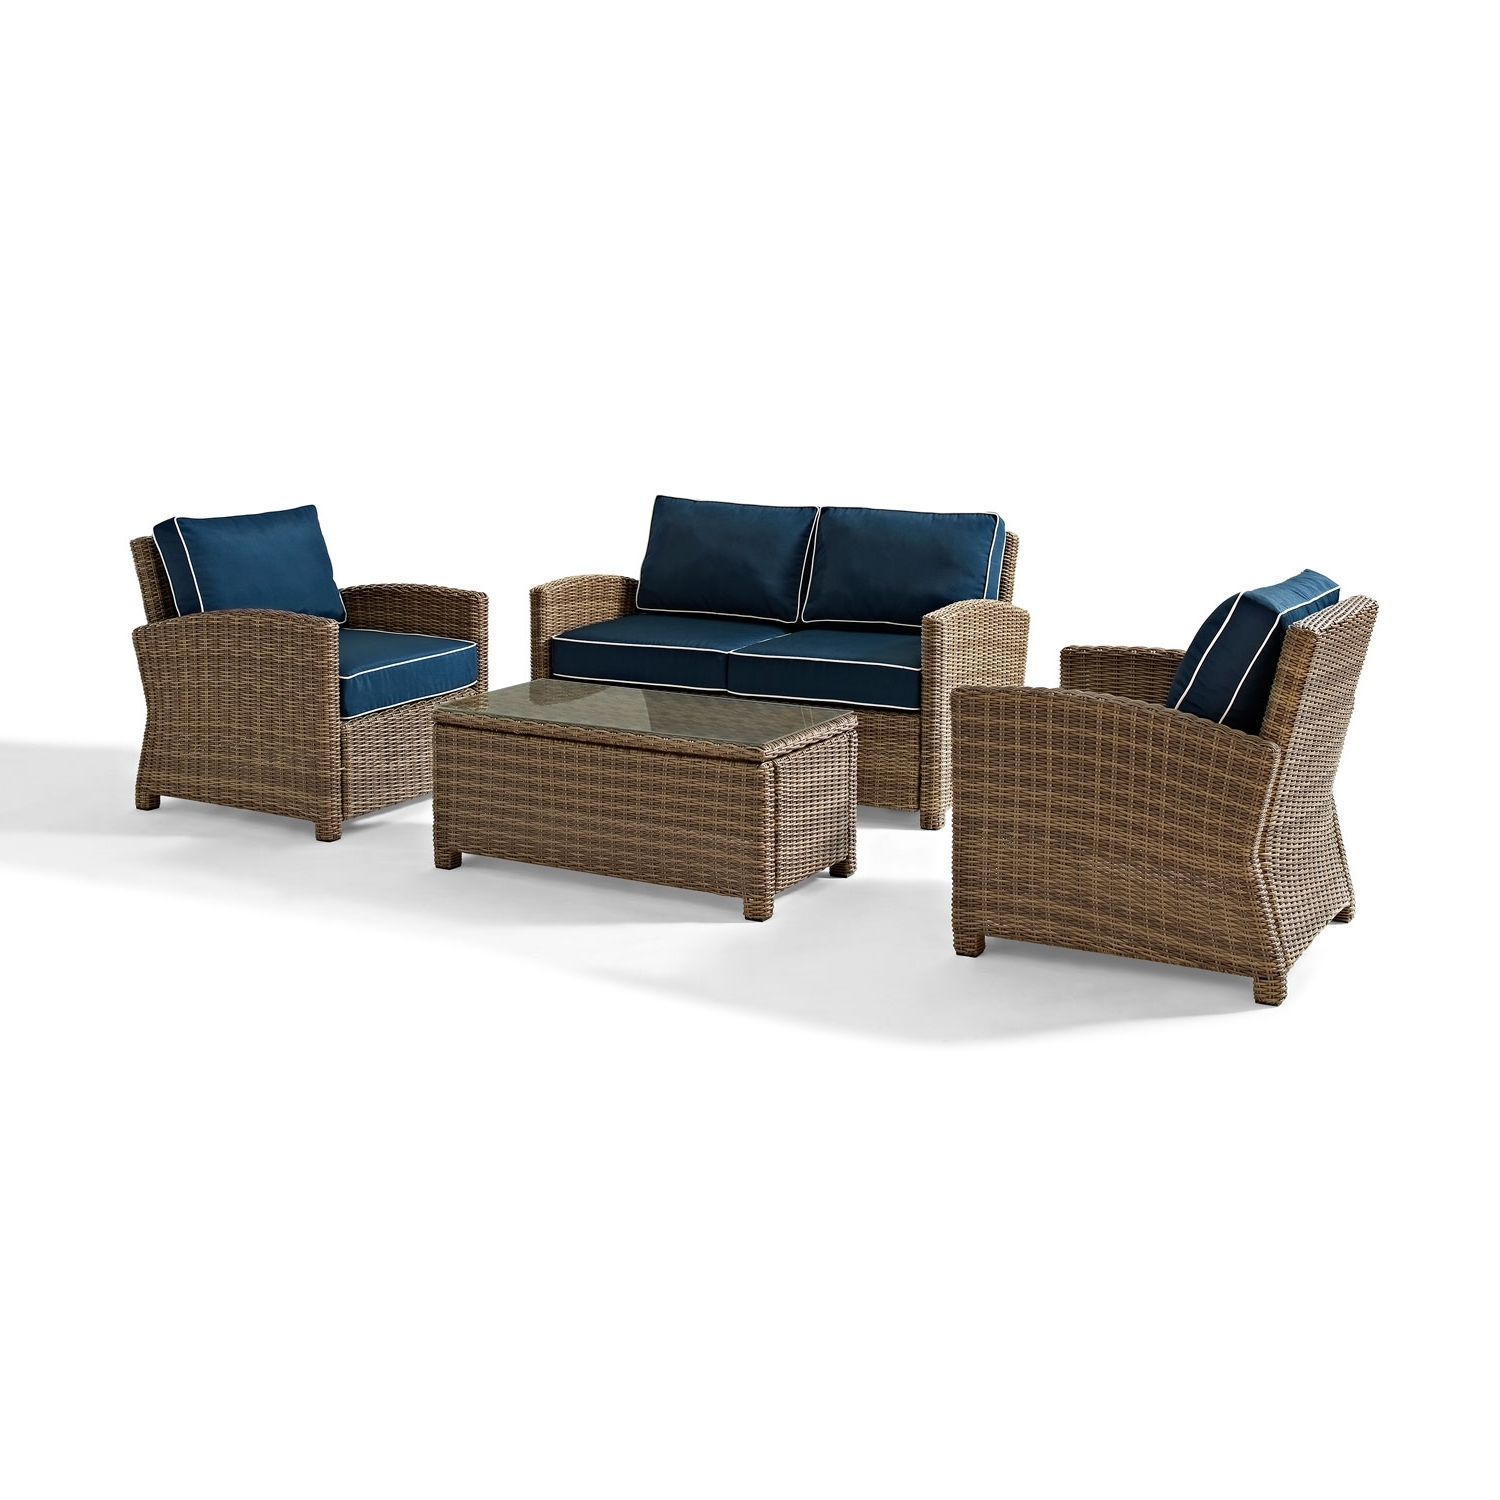 Most Popular Crosley Furniture Bradenton 4 Piece Outdoor Wicker Seating Set With For Wicker 4Pc Patio Conversation Sets With Navy Cushions (View 13 of 15)